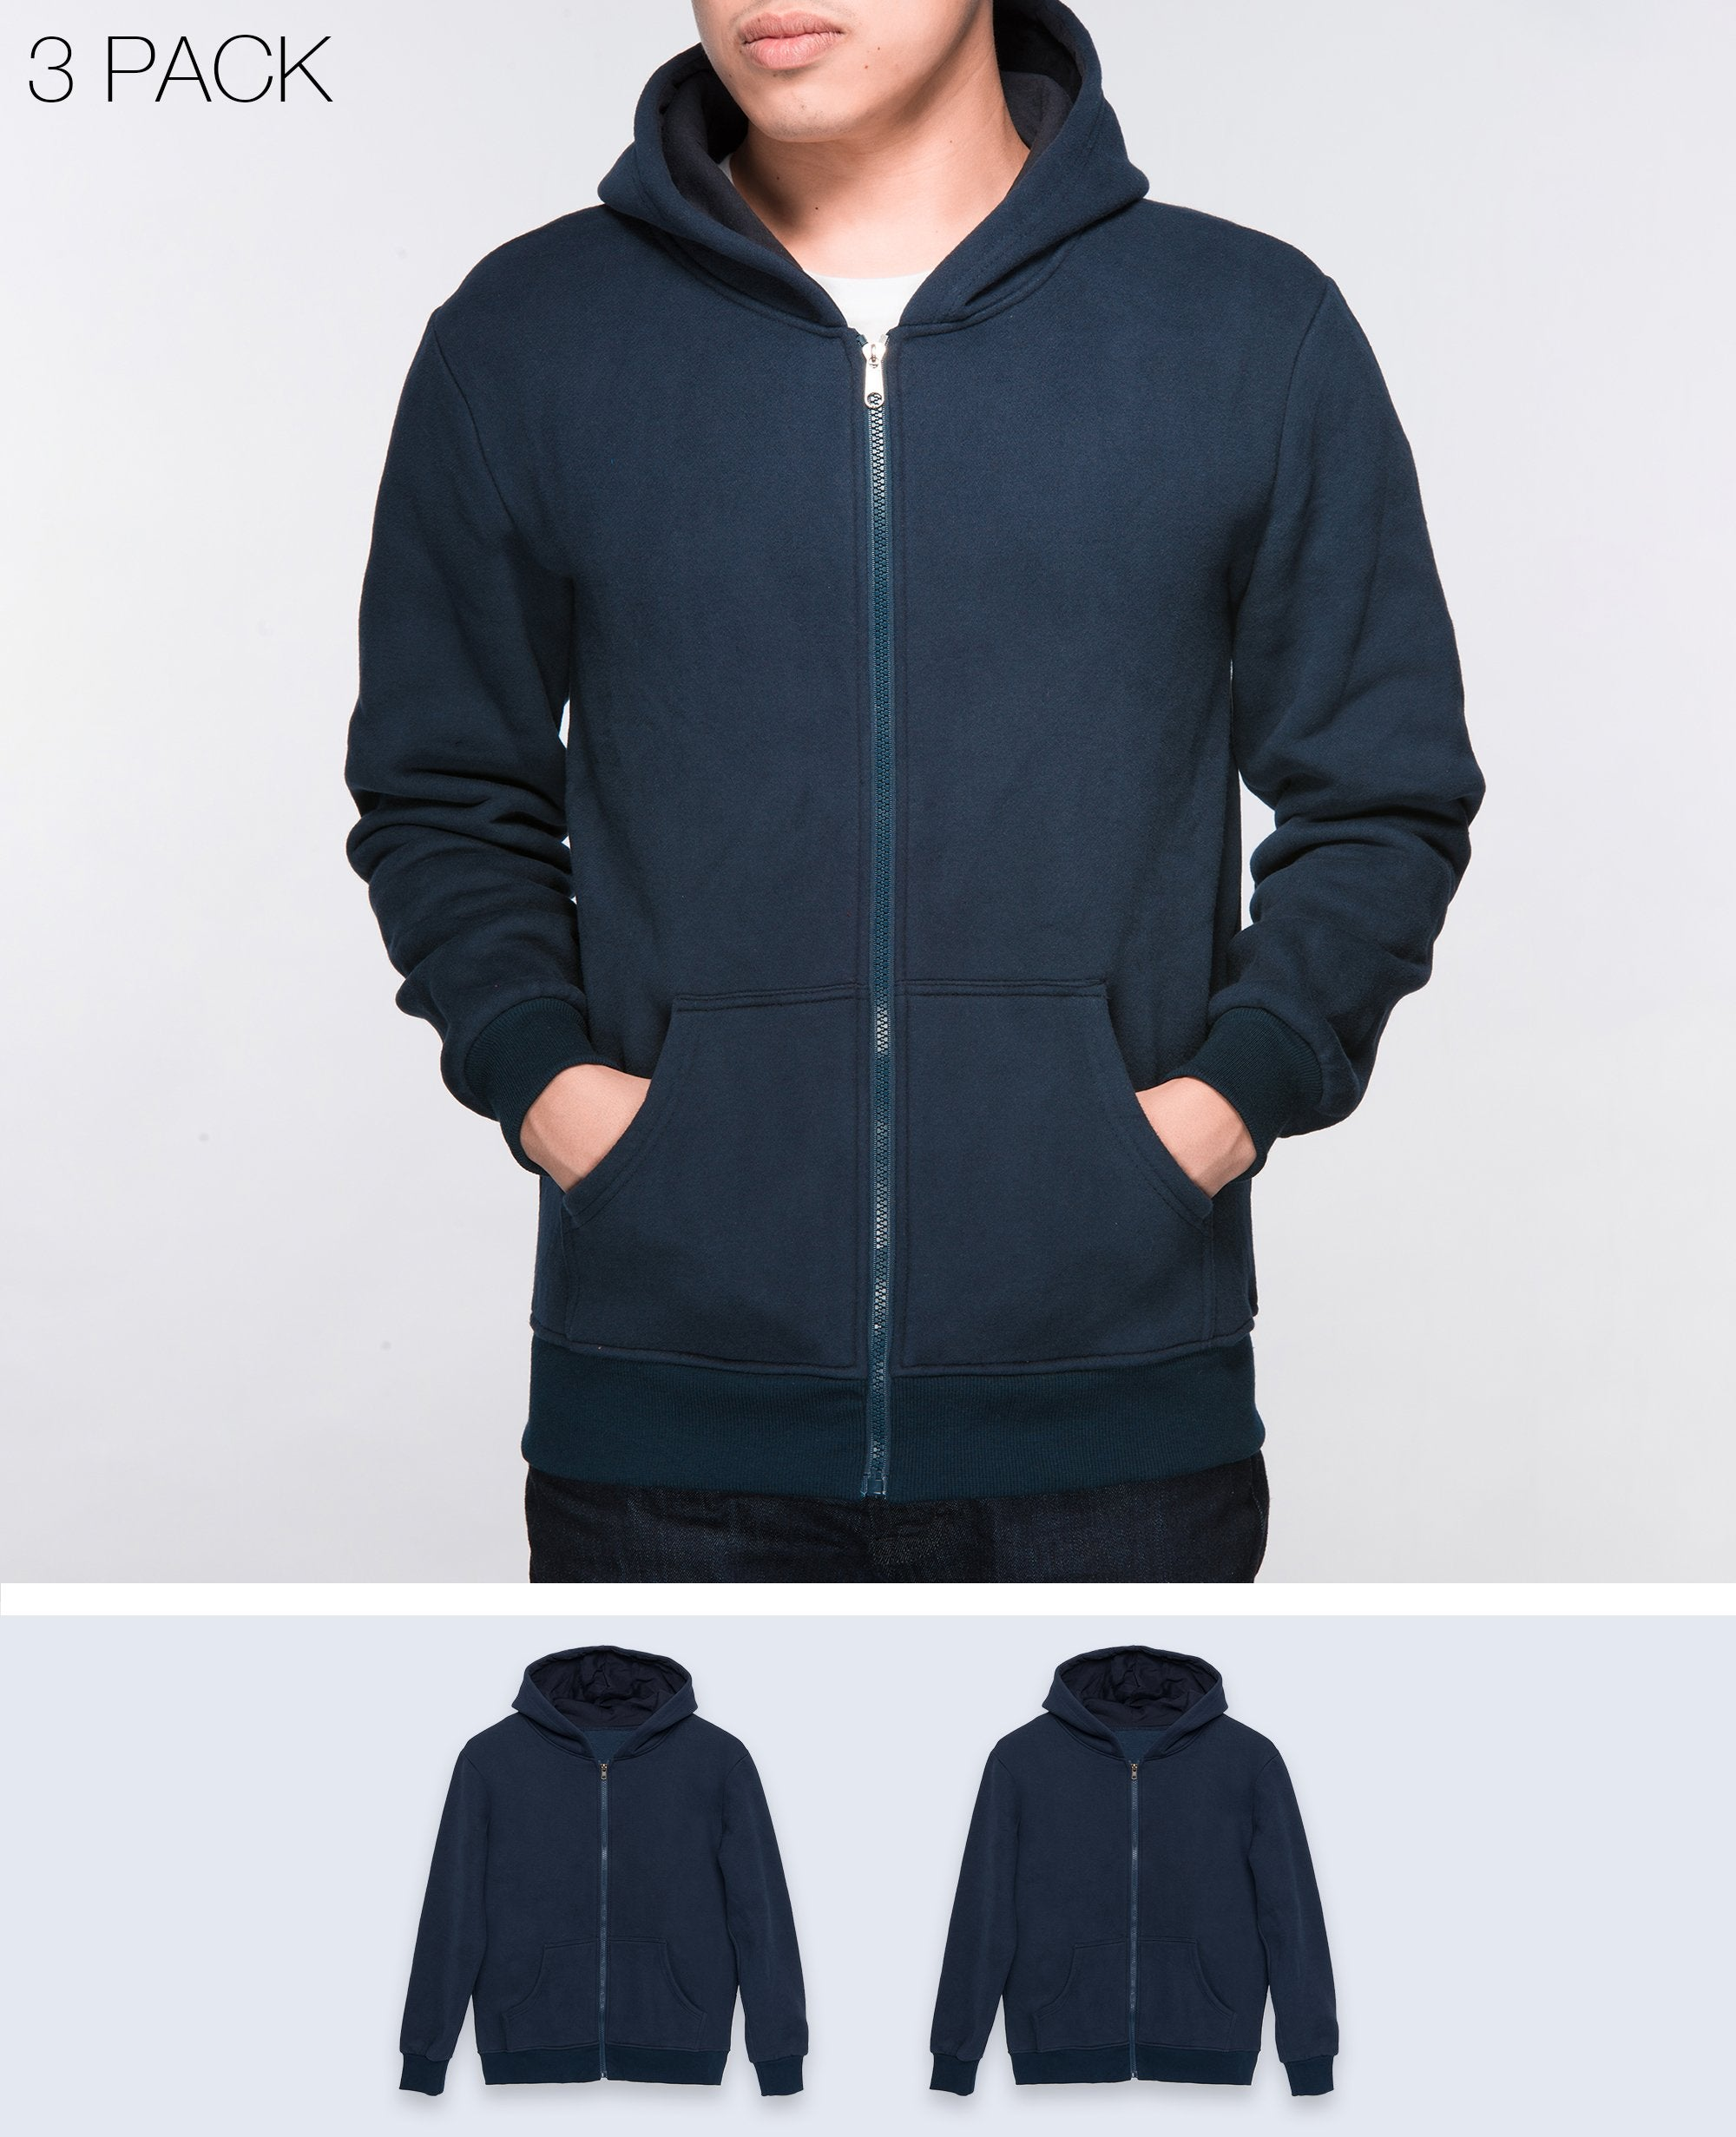 Unisex Basic Hoodies in Navy 2 pack - Hoodies - BRANMA - BRANMA